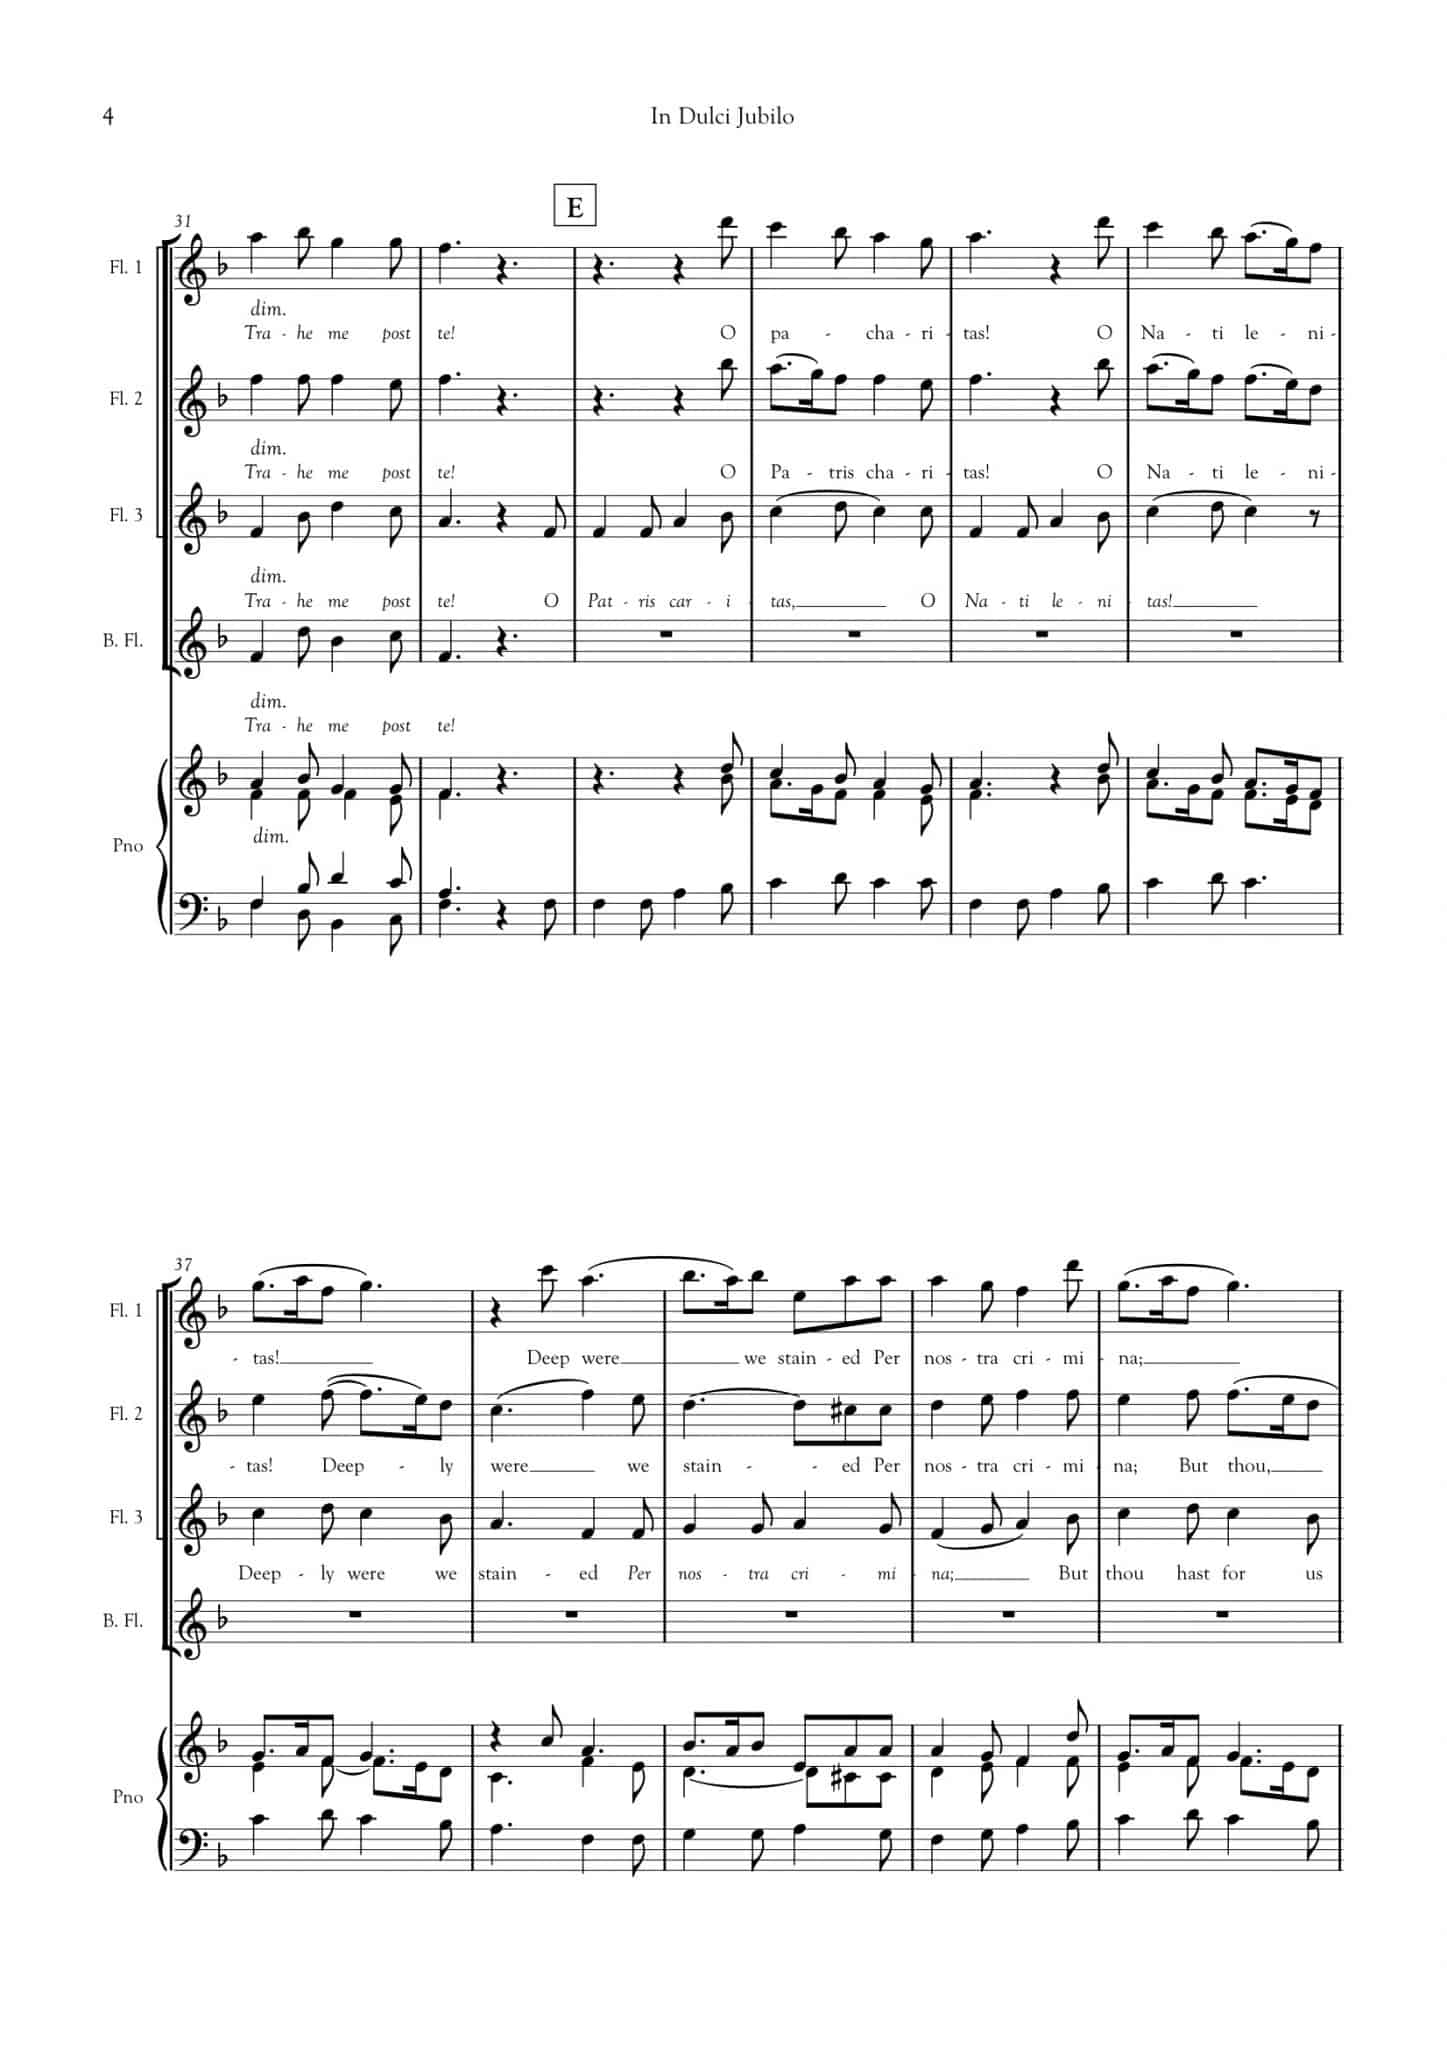 Simply Flute - In Dulci Jubilo - all parts_title sheet_no words copy_Part13